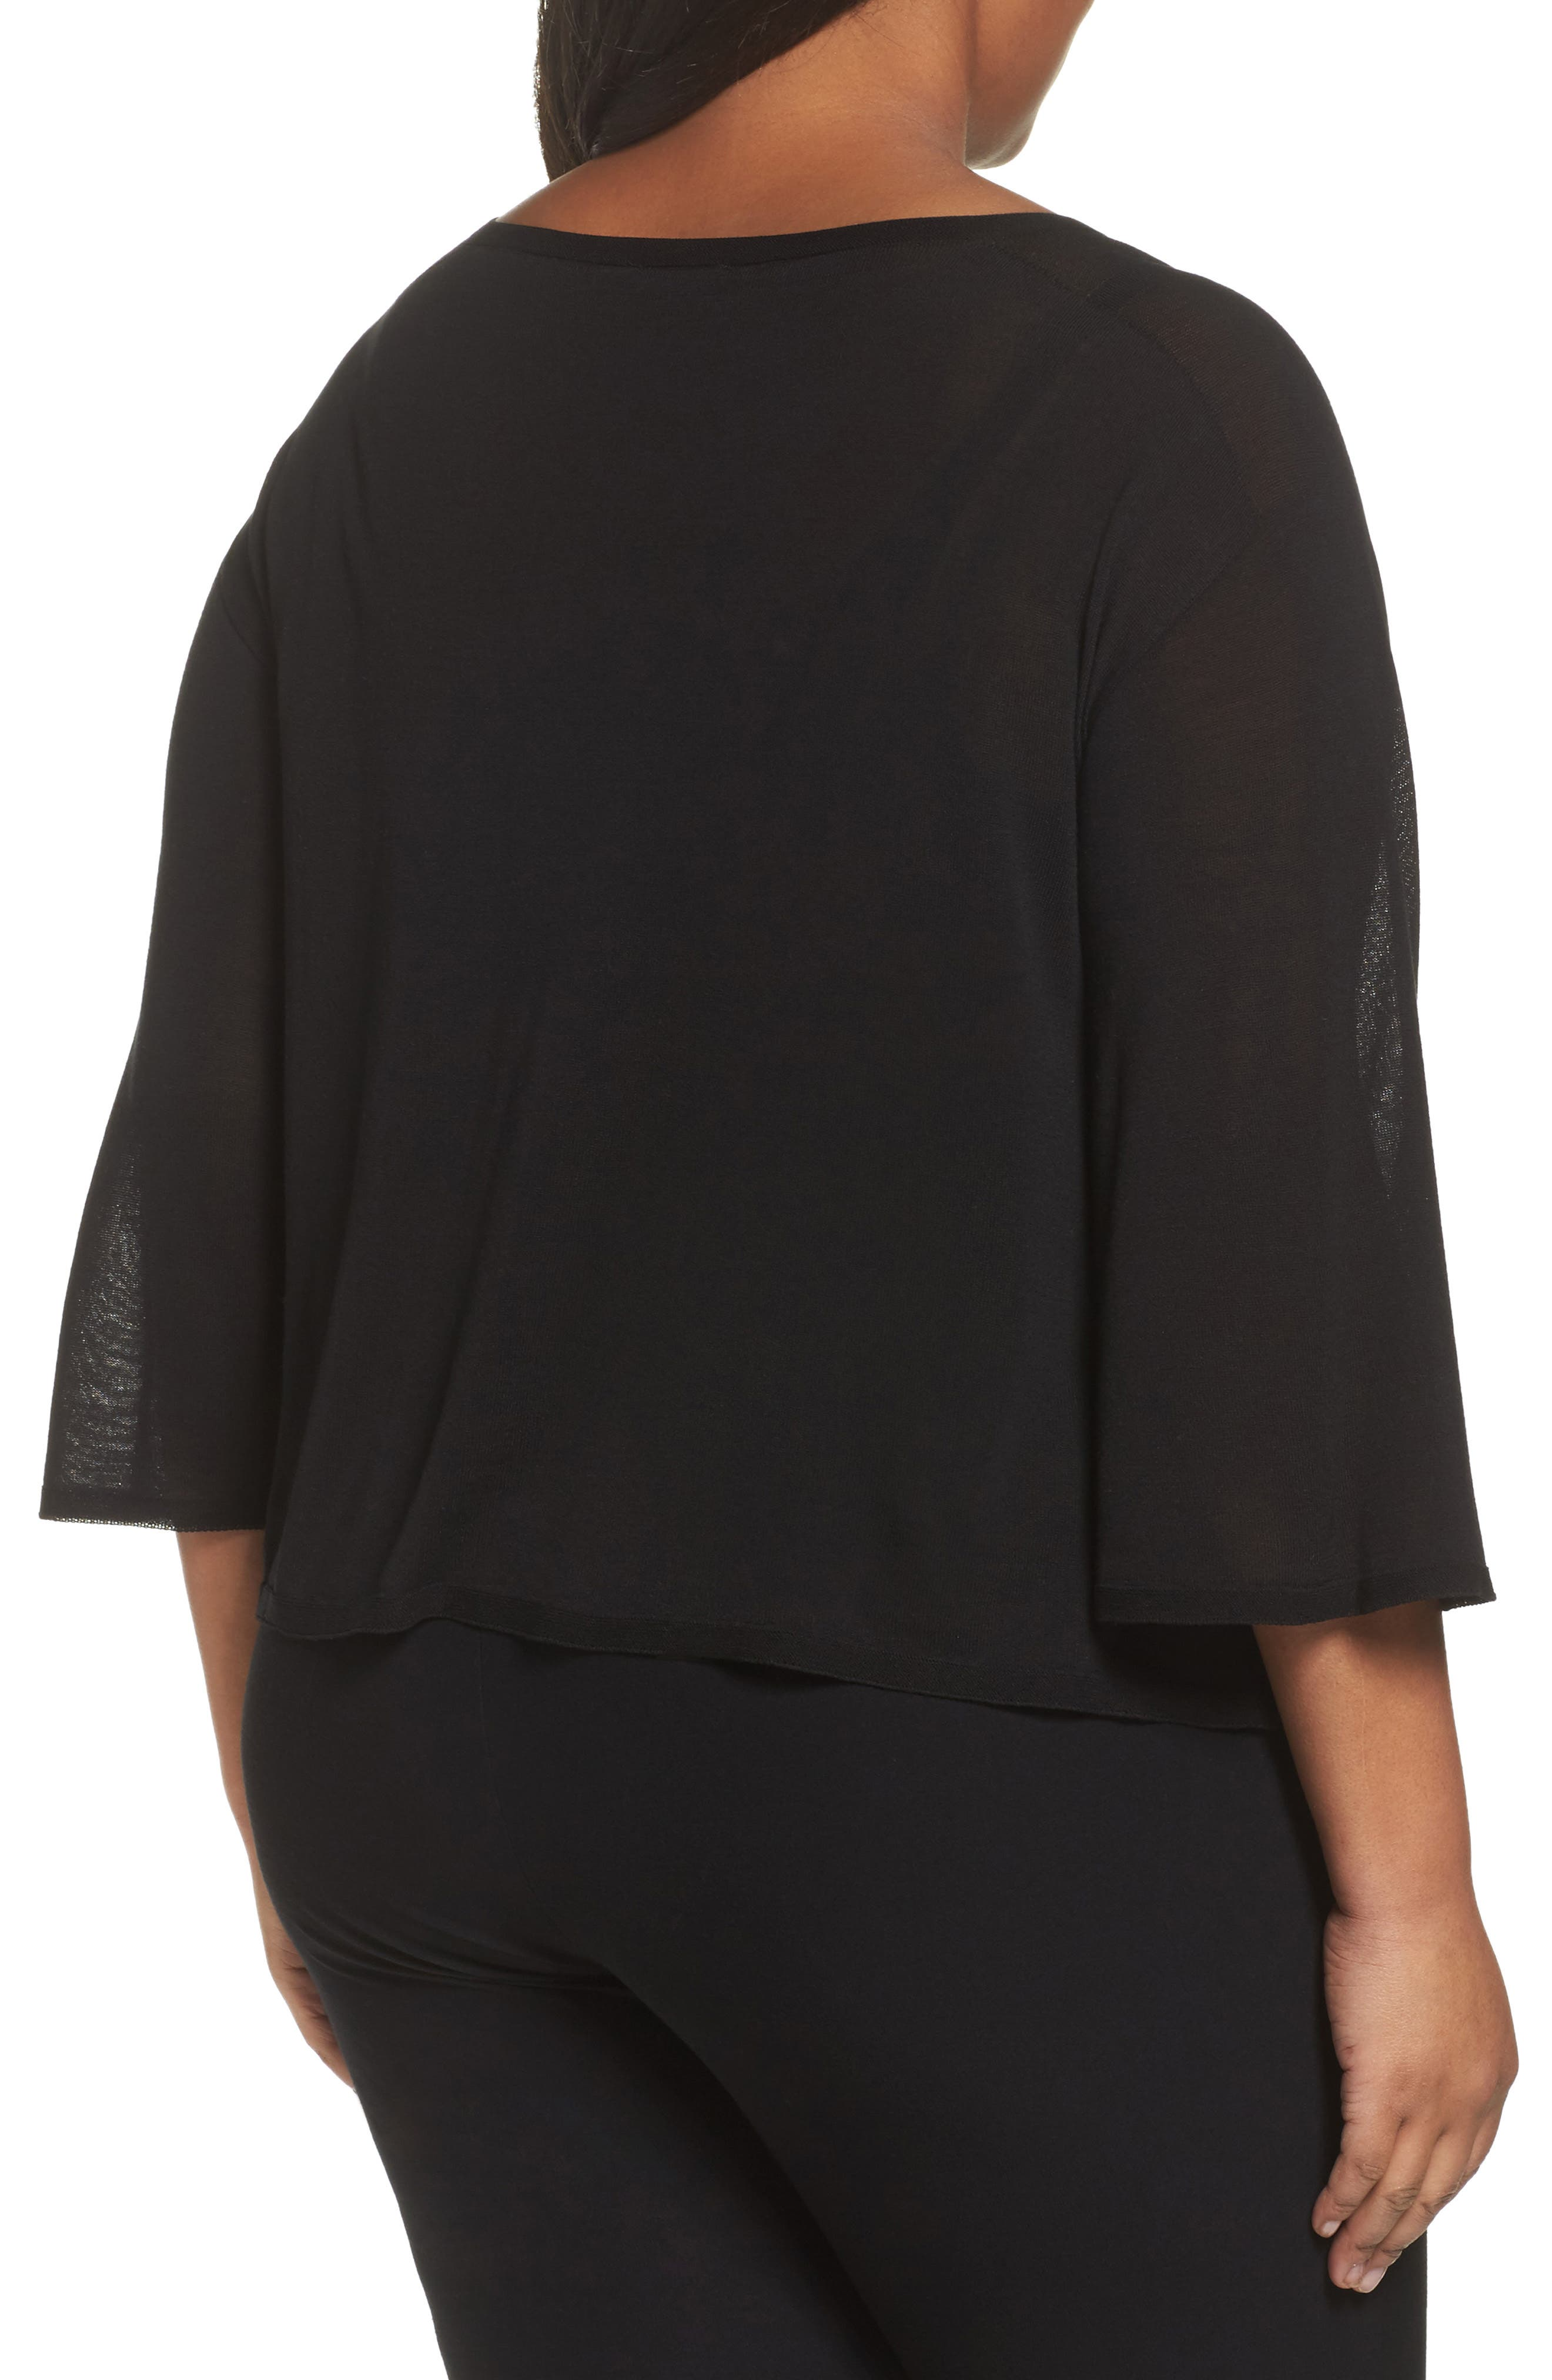 Tencel<sup>®</sup> Lyocell Lyocell Knit Sweater,                             Alternate thumbnail 2, color,                             001